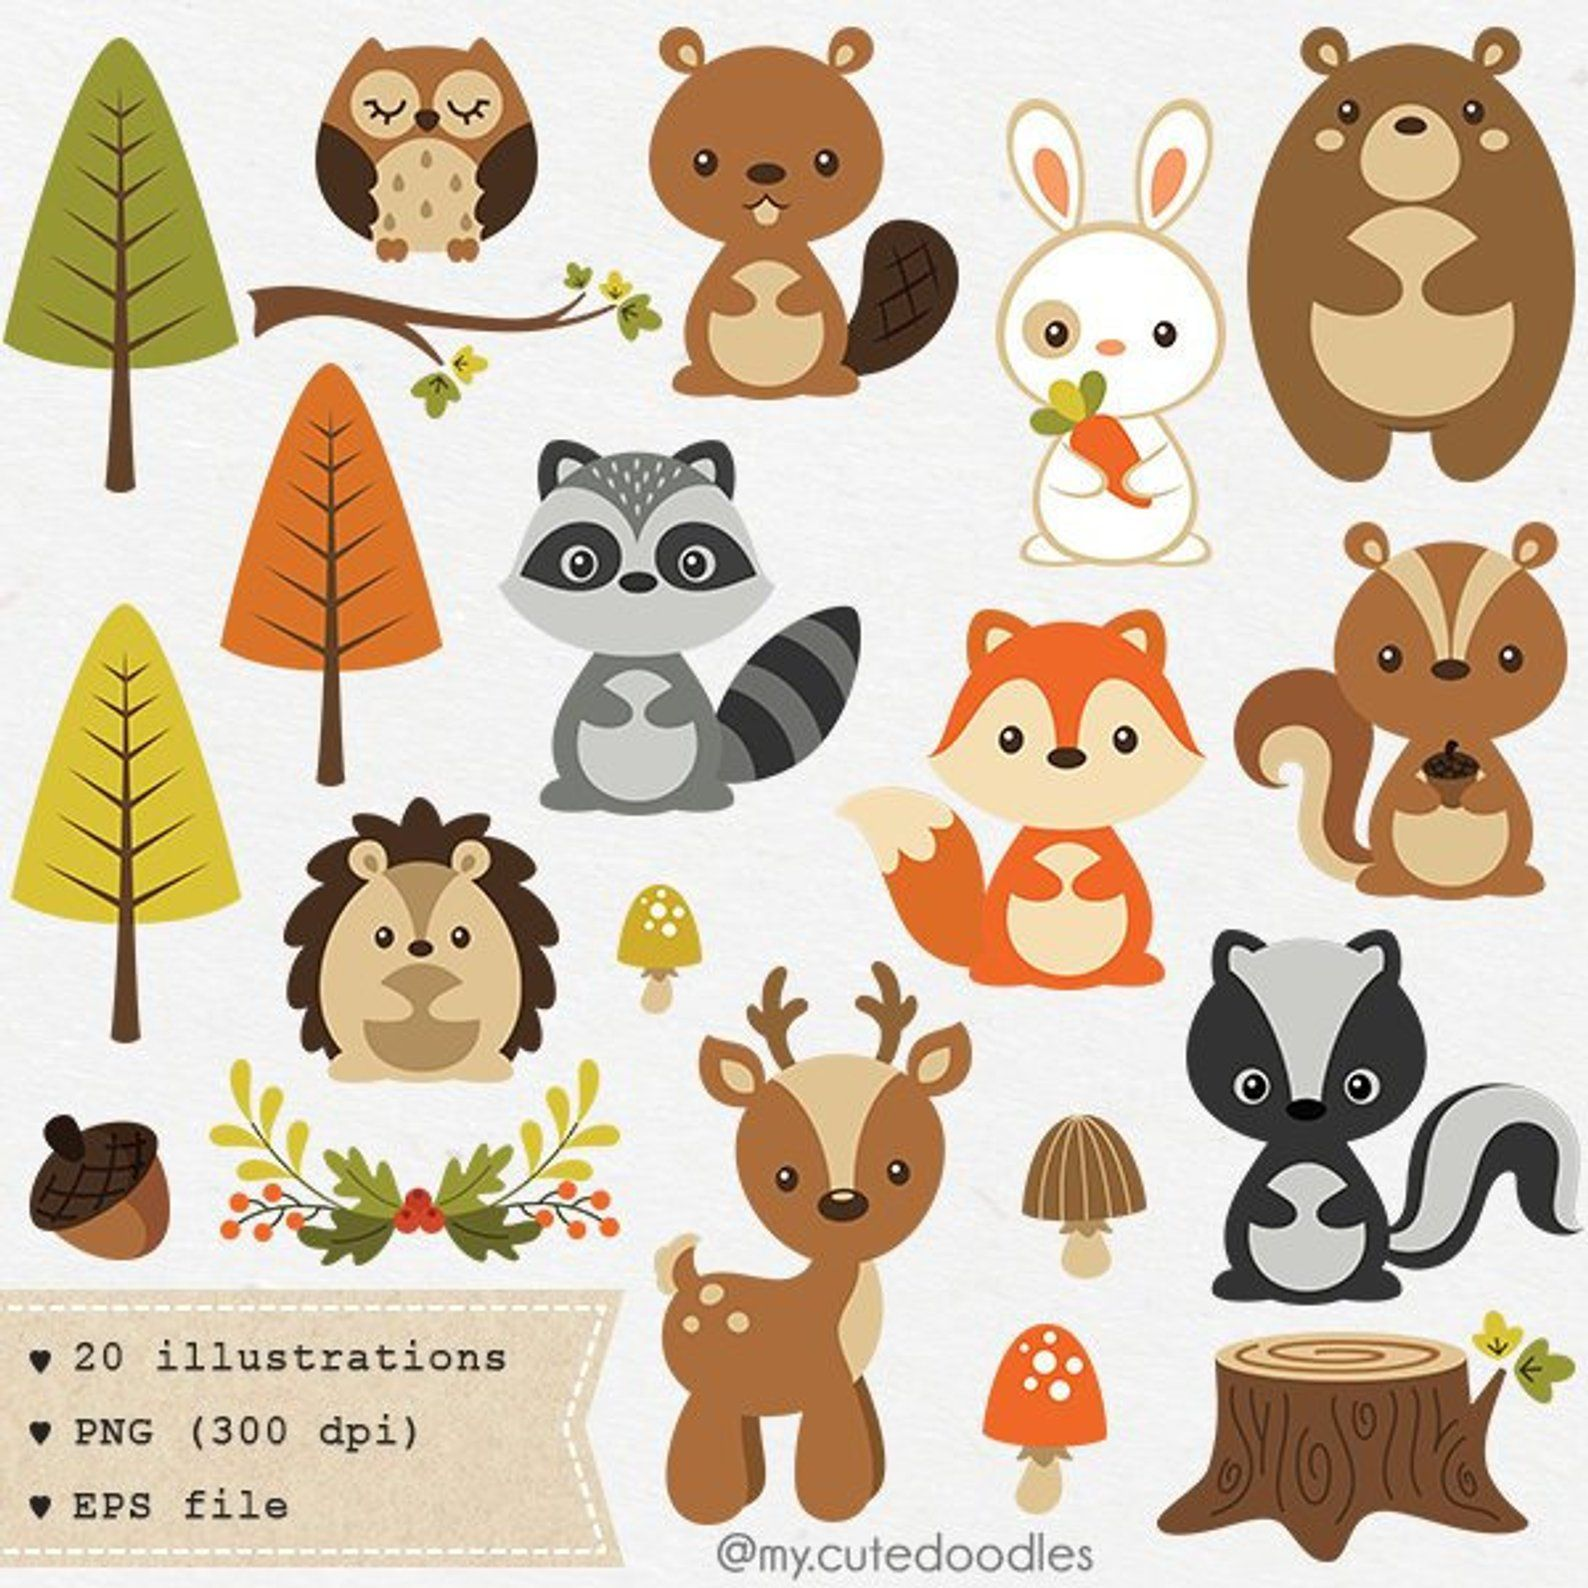 Woodland clipart cute woodland animal woodland nursery baby.